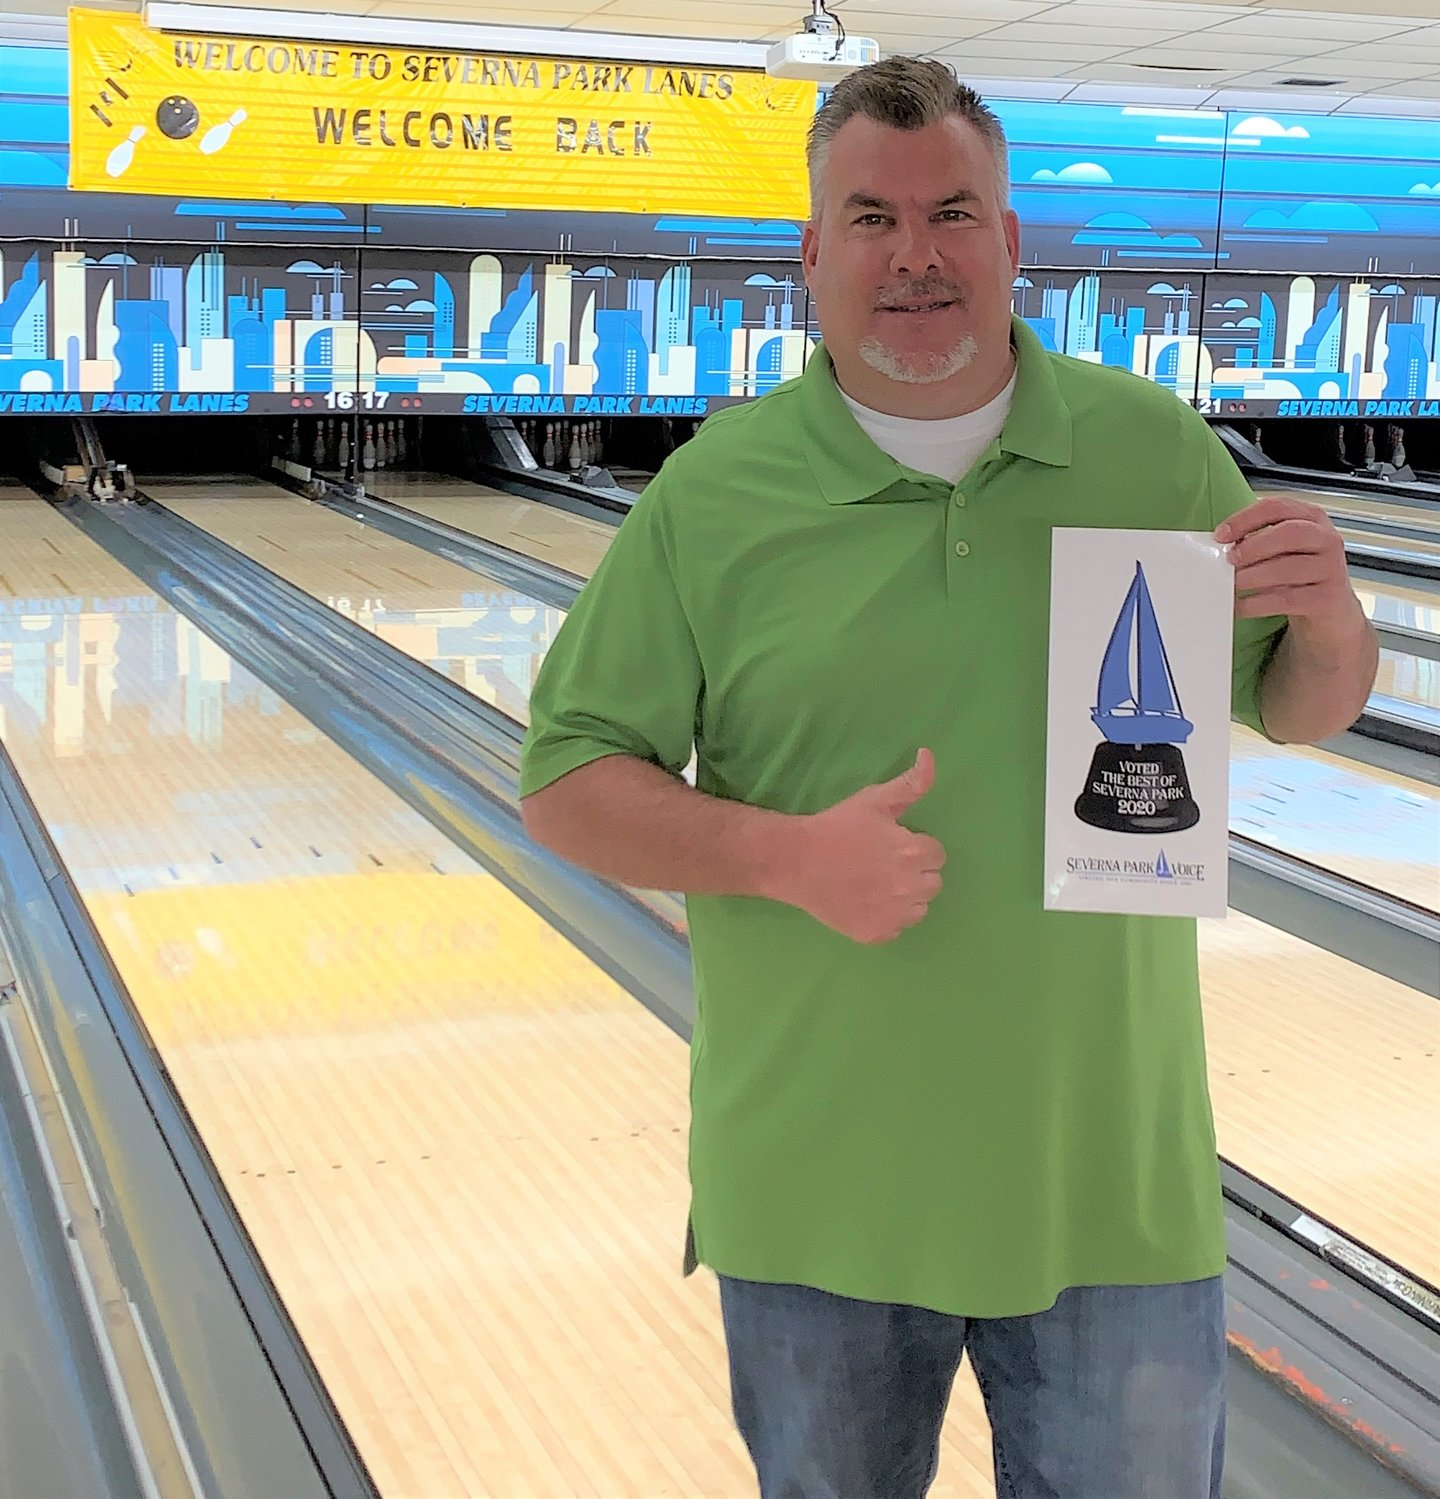 Severna Park Lanes owner Mike Hall accepted the Best Of award for Best Place For Family Entertainment.